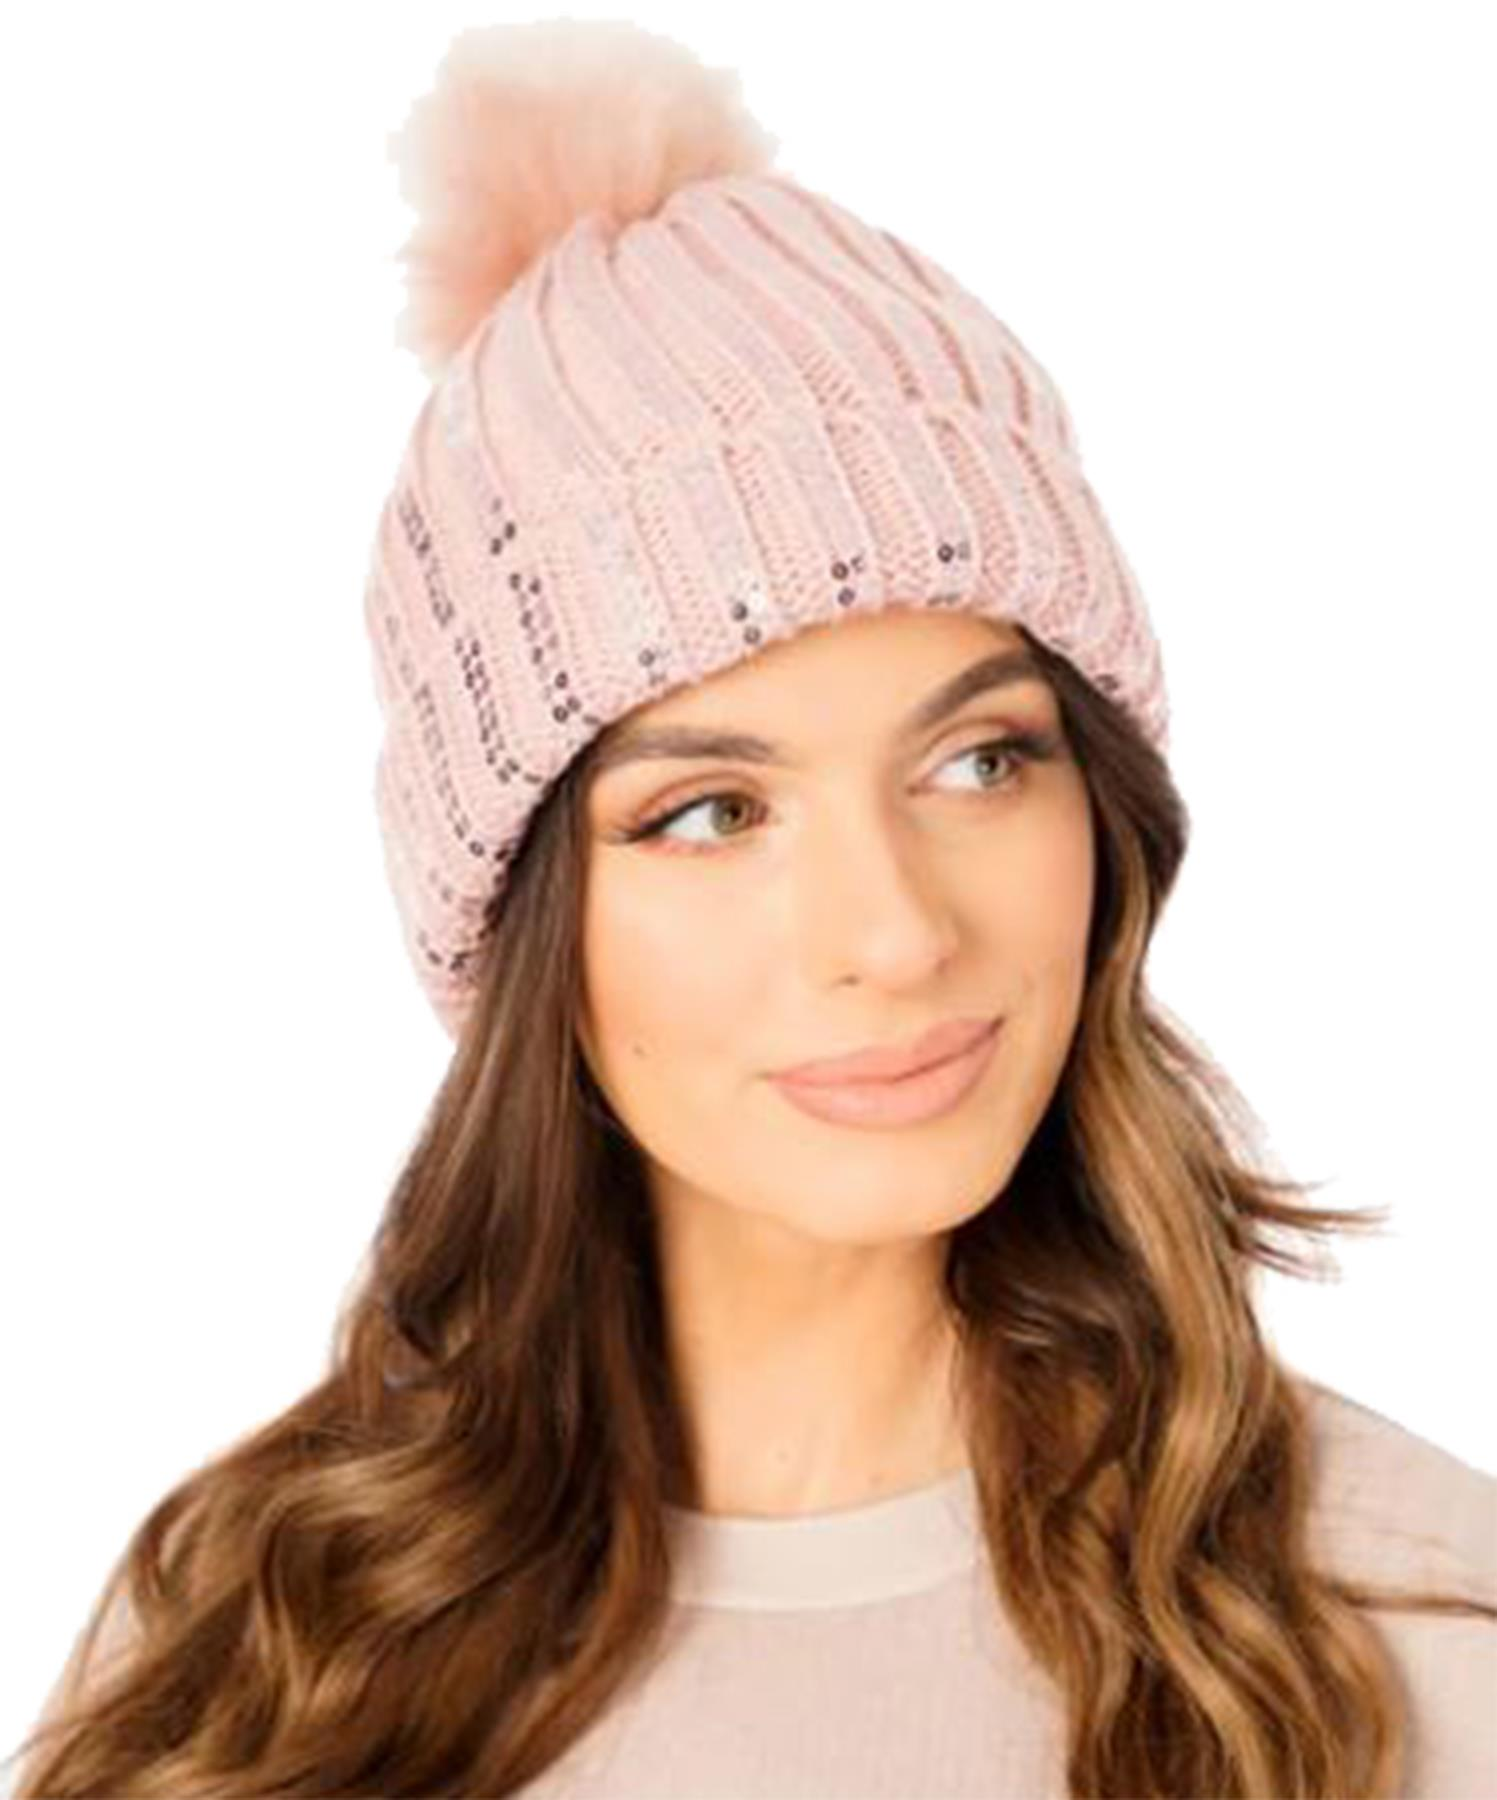 New-Ladies-Fleece-Lining-Sequins-Faux-Fur-Pom-Pom-Winter-Beanie-Hat thumbnail 11